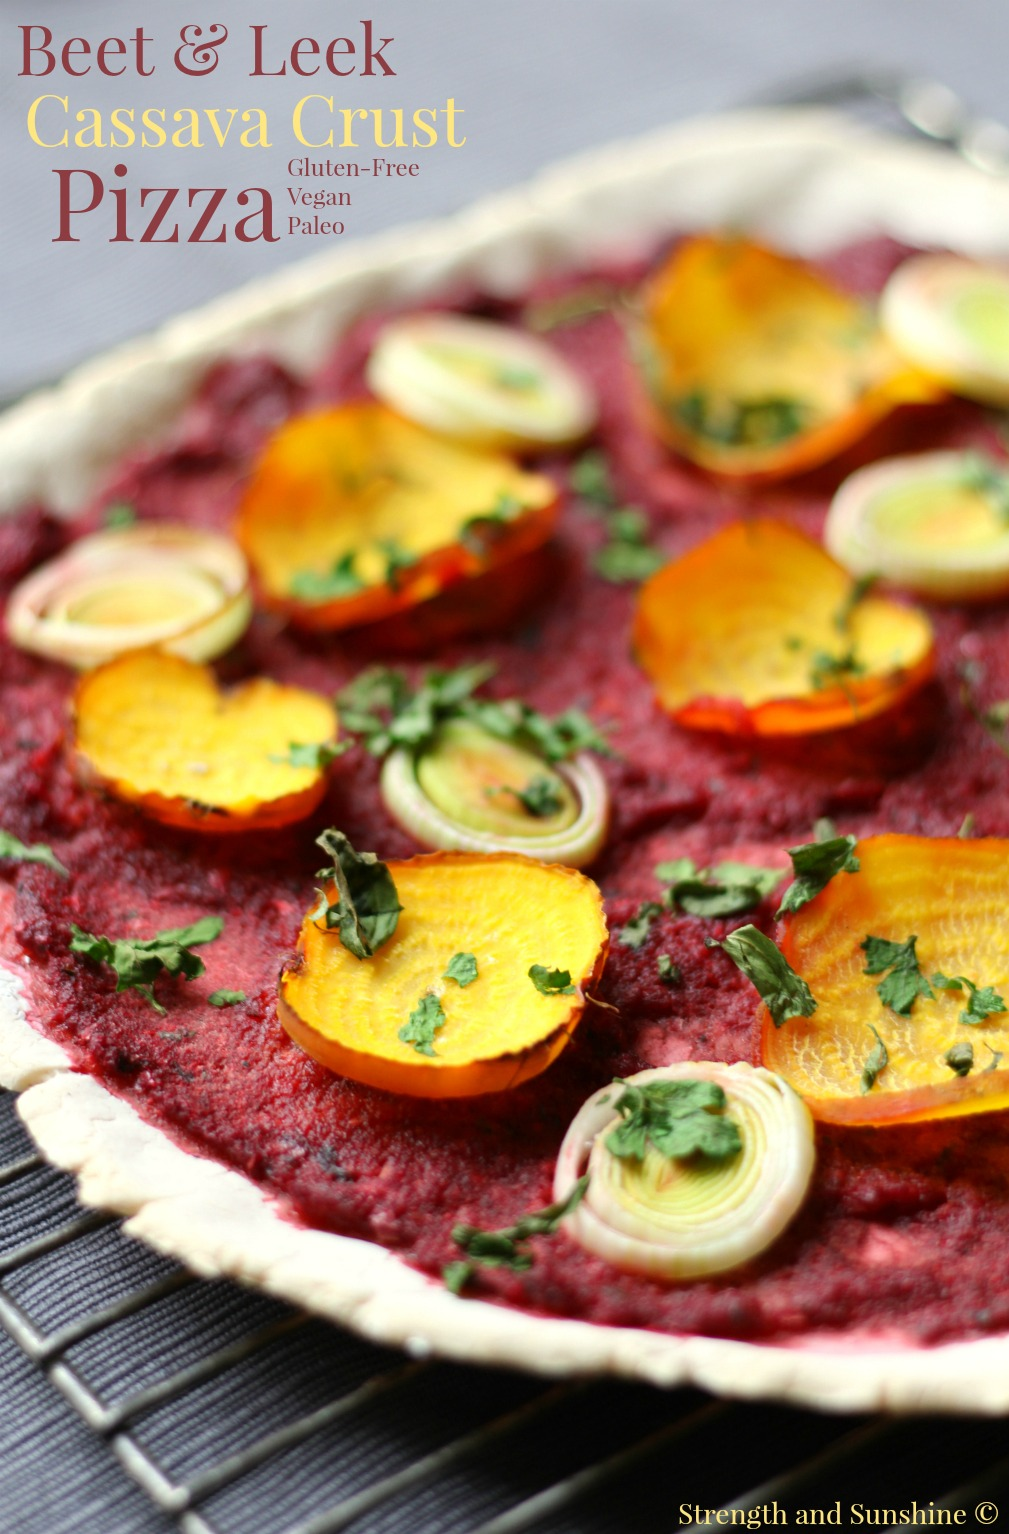 Beet & Leek Cassava Crust Pizza | Strength and Sunshine @RebeccaGF666 It's pizza time! A healthy beet & leek cassava crust pizza that's gluten-free, vegan, nut-free, and paleo. A fantastic whole food pizza recipe for a weeknight dinner, but fancy enough for a date night!